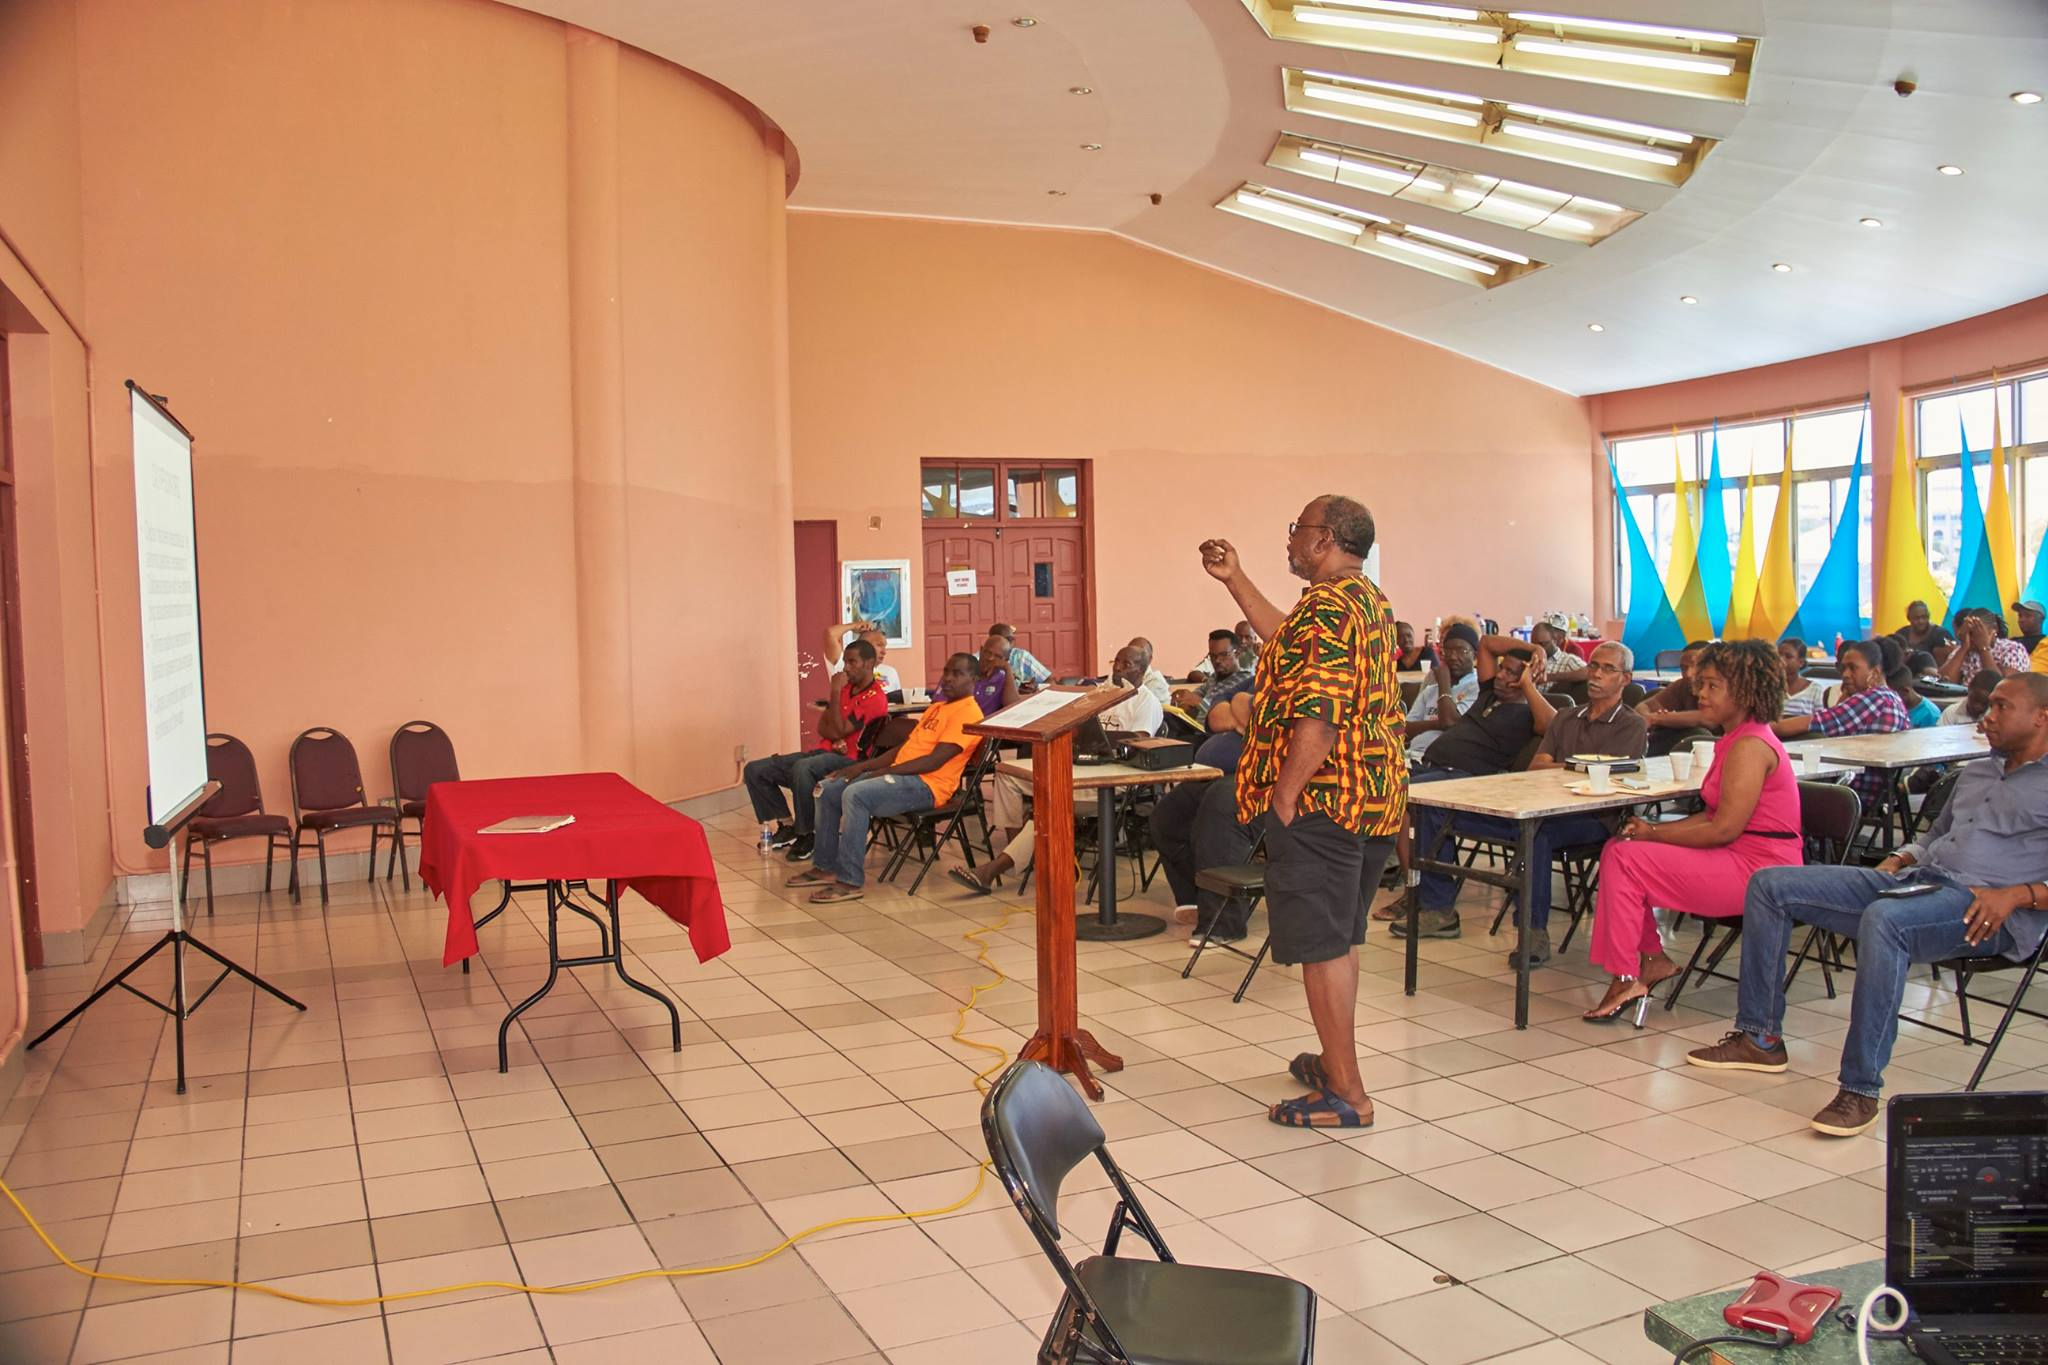 2017 Calypso Workshop held at the Multipurpose Cultural Centre